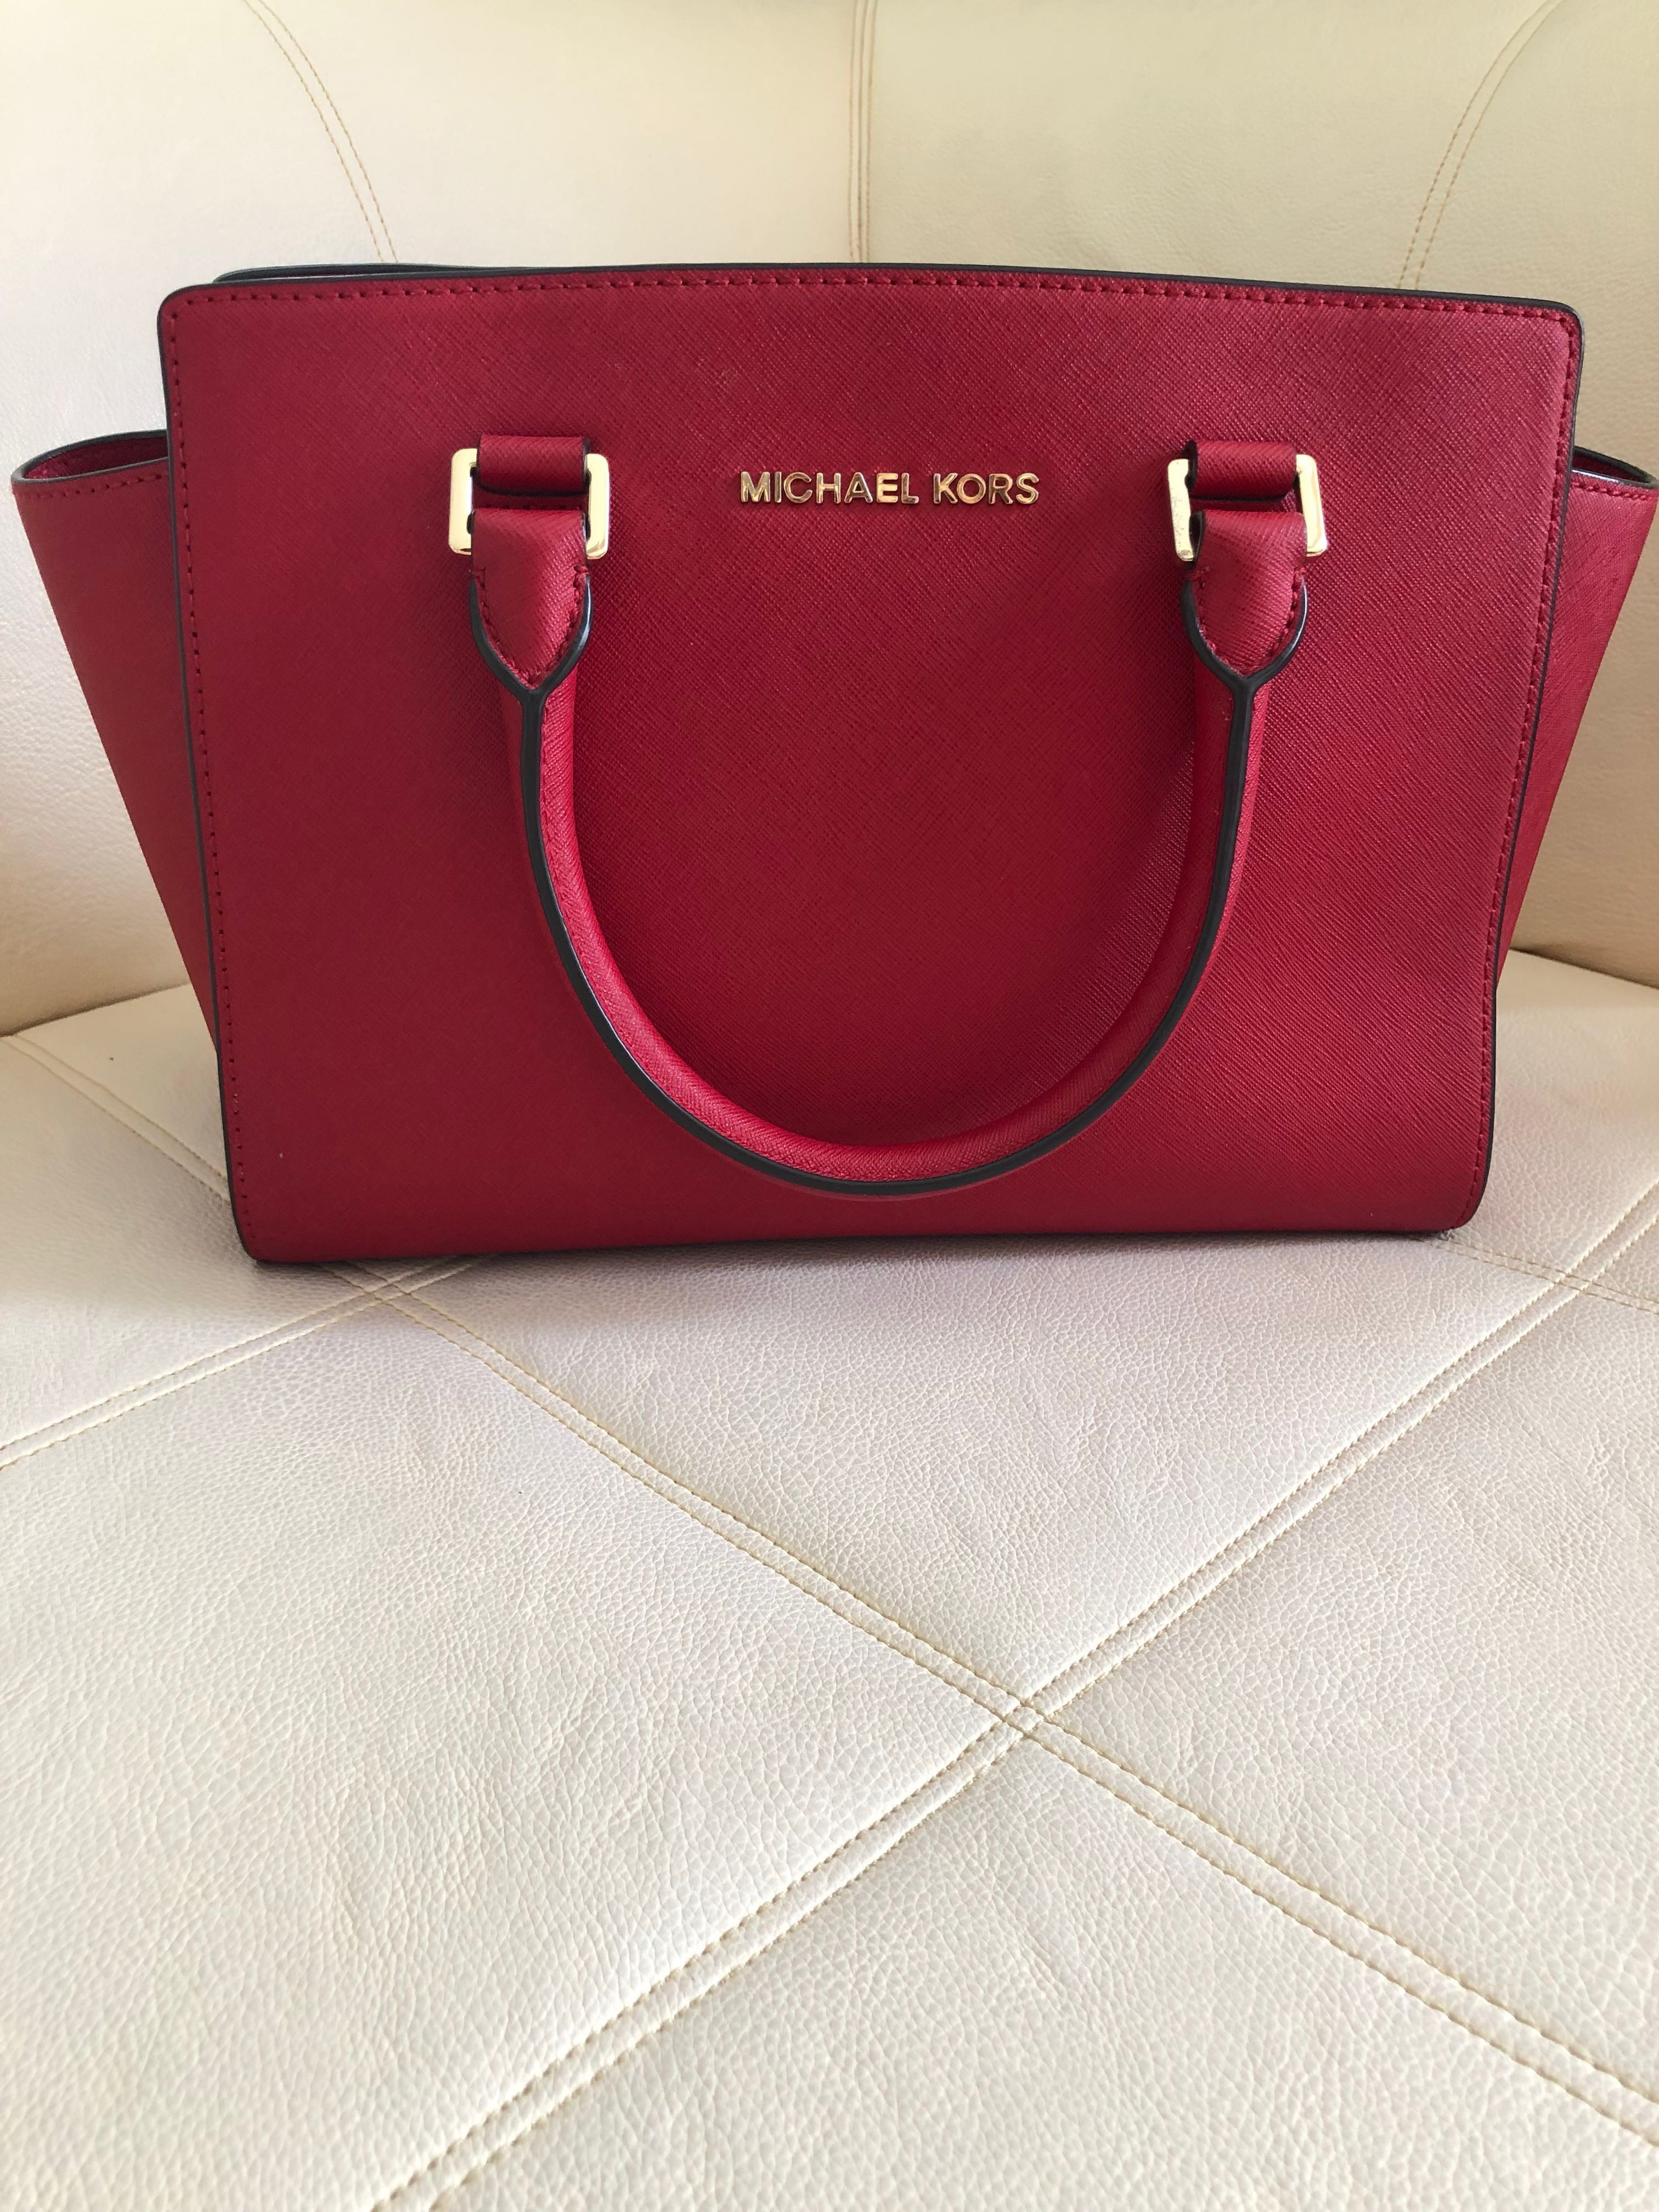 2f8005f557d Michael Kors Bag (authentic), Luxury, Bags & Wallets on Carousell